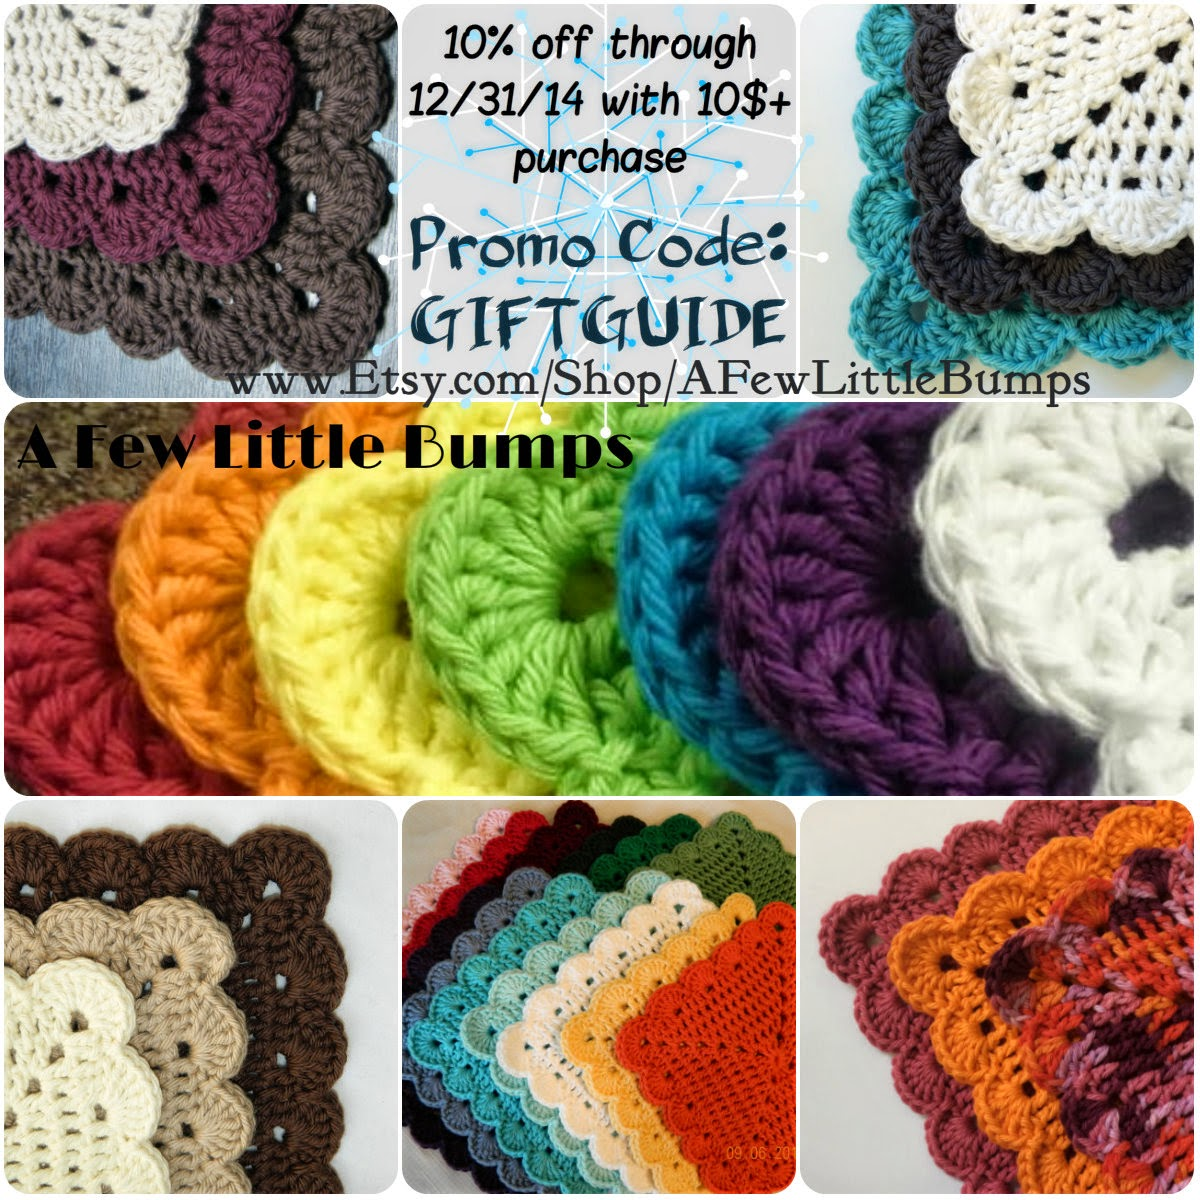 A Few Little Bumps Promo Code: GiftGuide